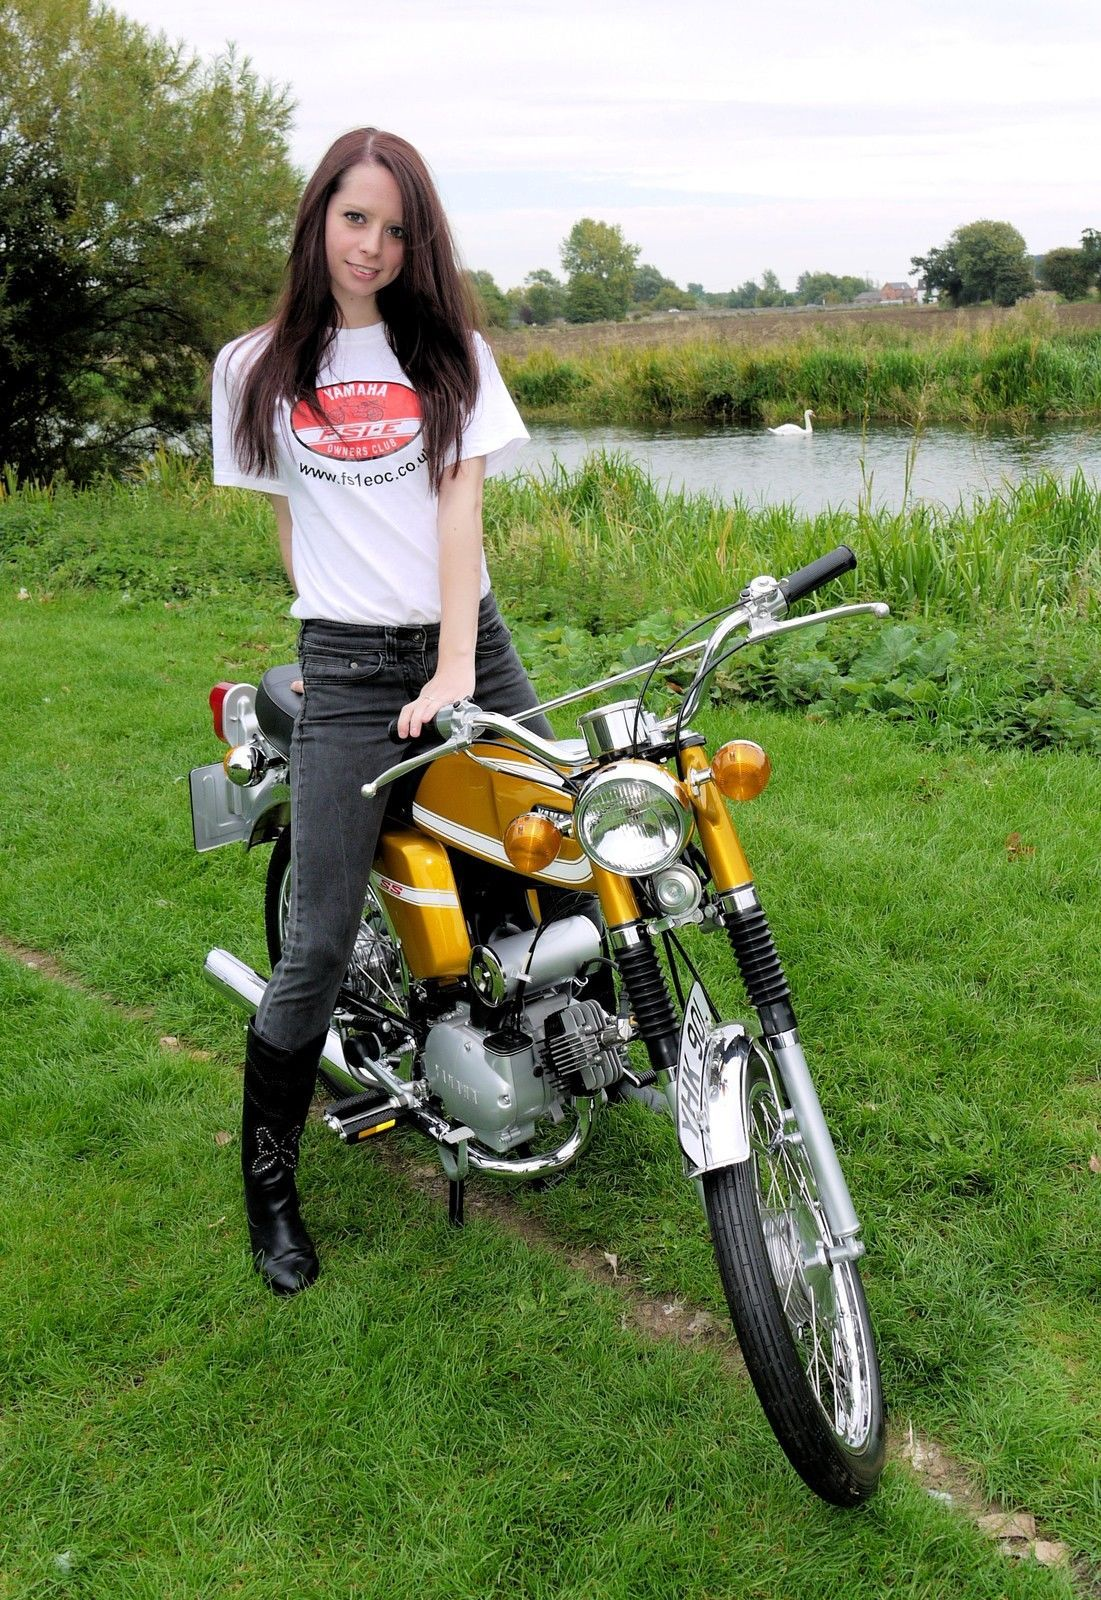 Yamaha Fs1e Fizzy Fissy Fs1 Fs1 E Owners Club T Shirt In Vehicle Parts Accessories Motorcycle Parts Other Motorcycle Part Yamaha Retro Bike Chicks On Bikes